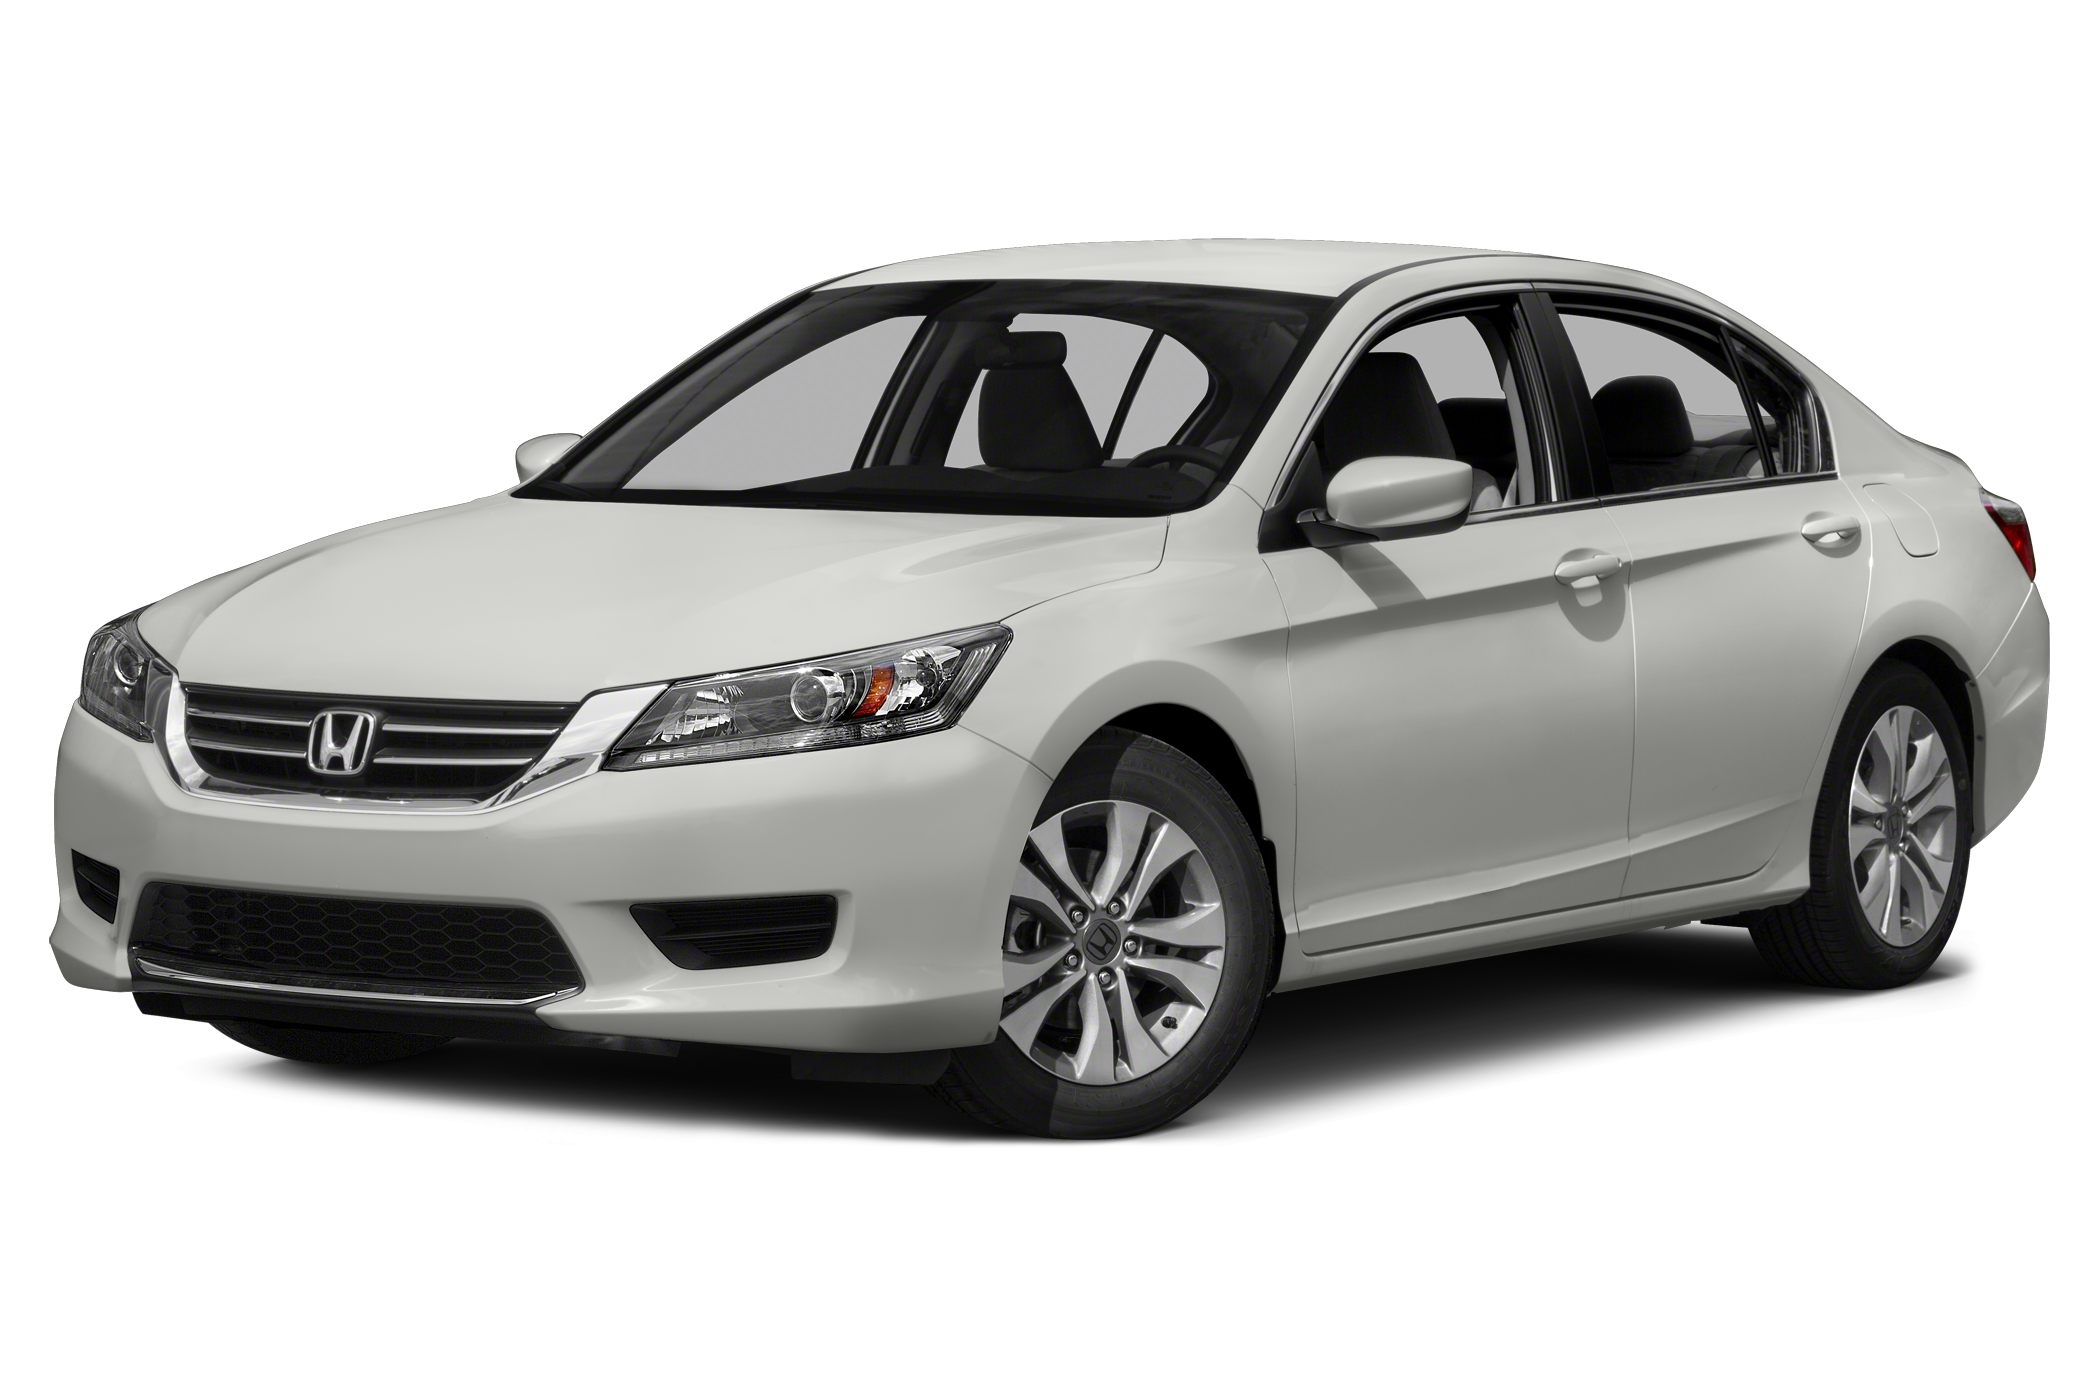 2014 Honda Accord LX This particular One-Owner Accord LX Edition is an excellent value This Honda